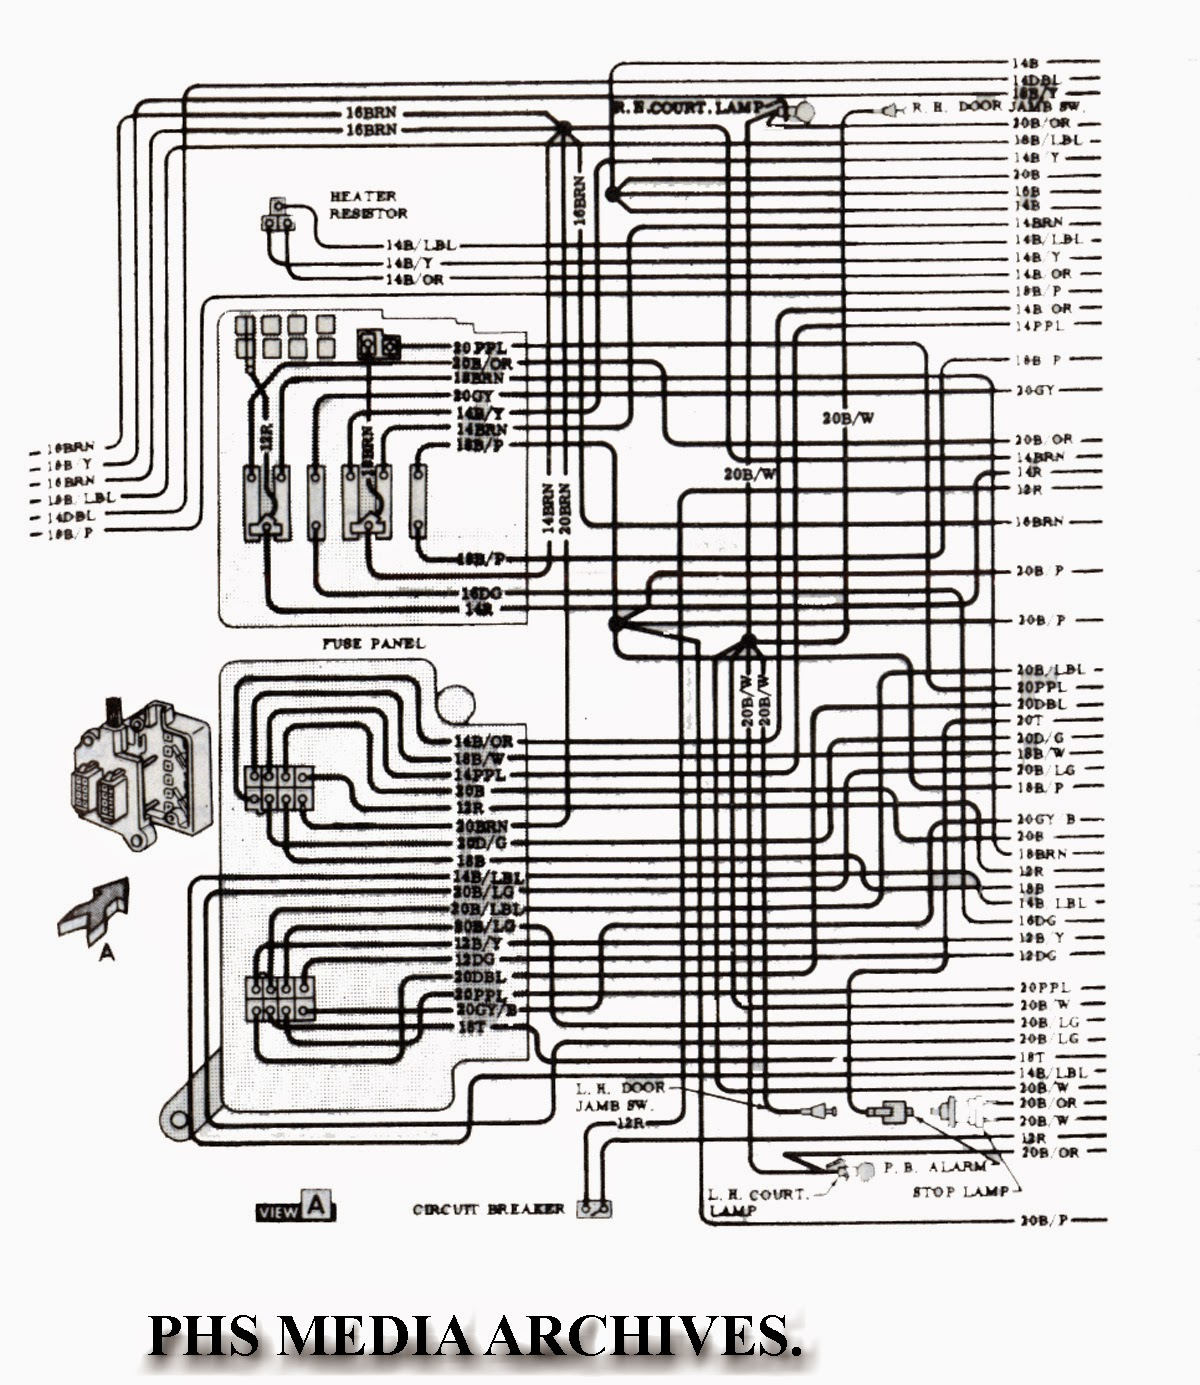 65 Impala Fuse Diagram Explore Wiring On The Net 69 Chevrolet Chevy Panel Diagrams Only 40 67